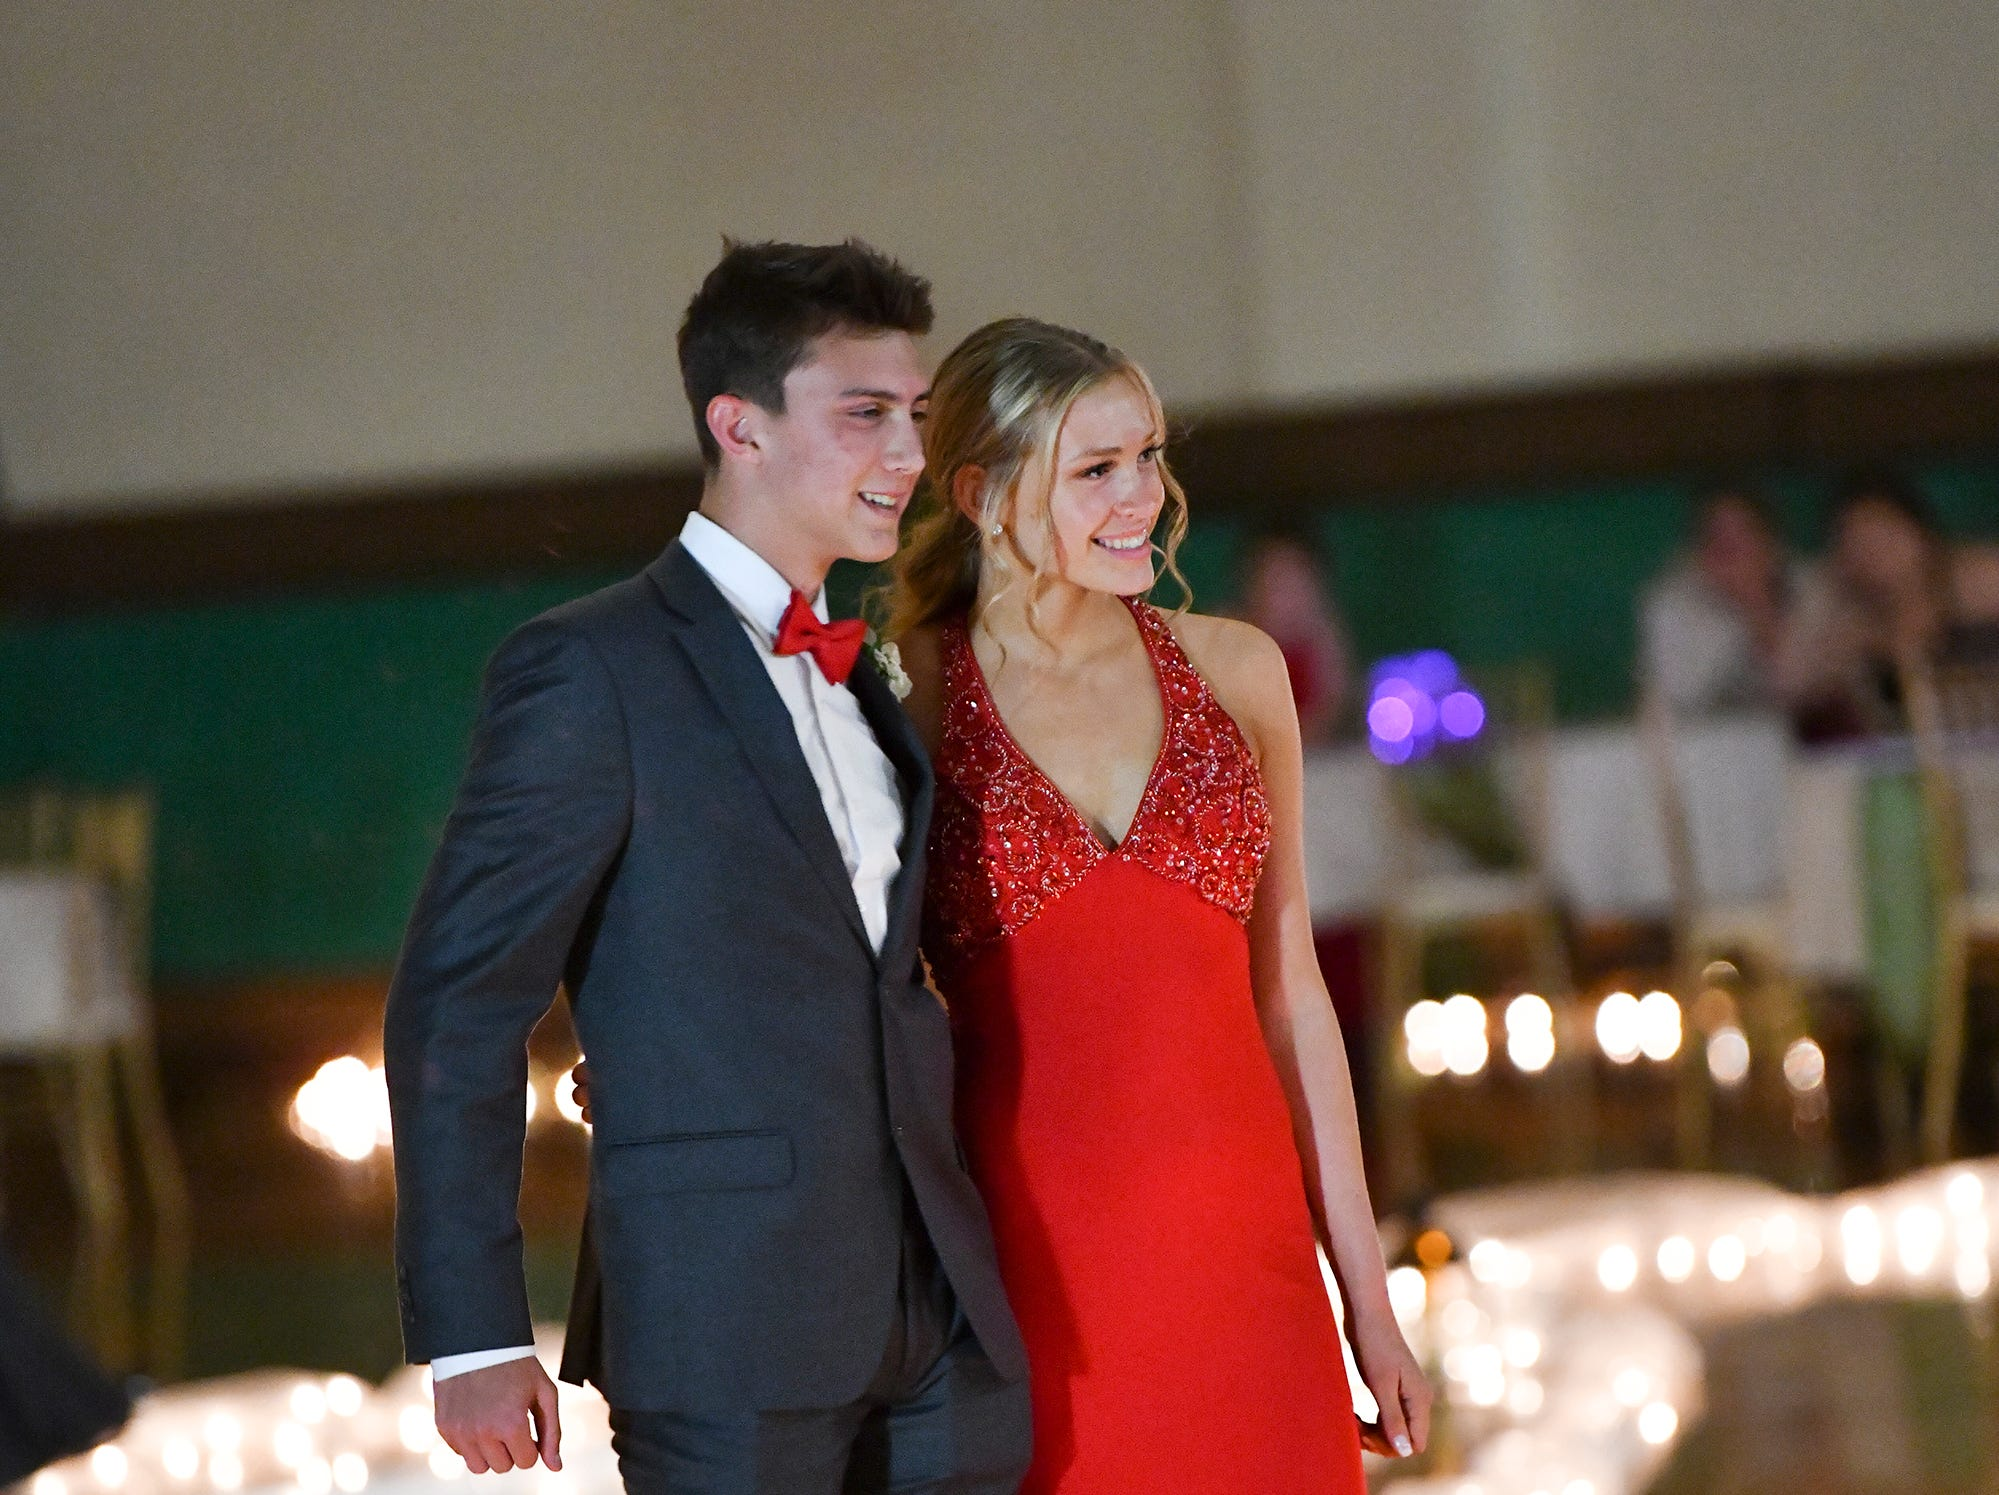 Couples smile for photos during prom grand march Saturday, April 27, at Tech High School in St. Cloud.